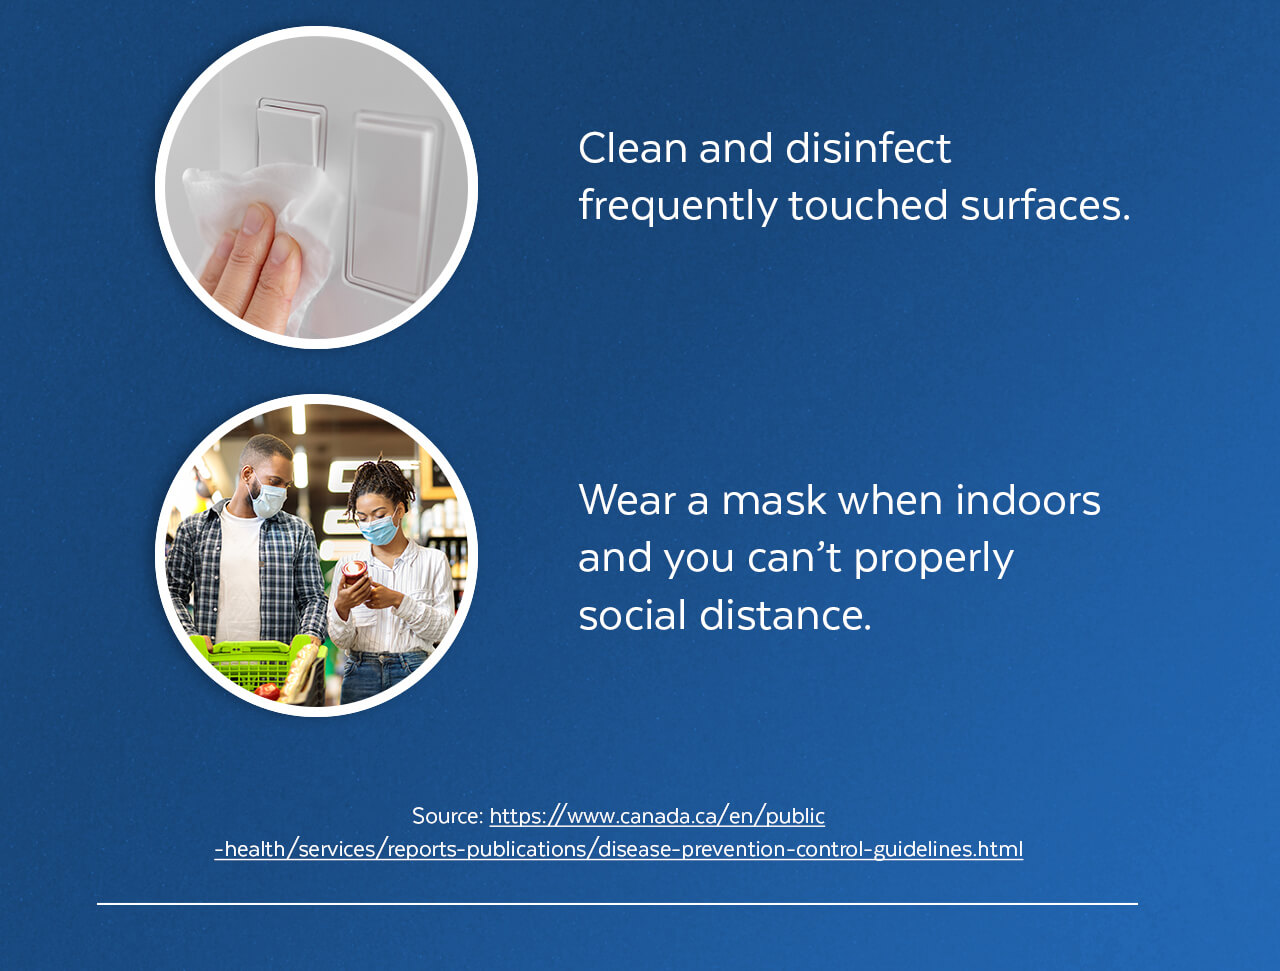 Clean and disinfect frequently touched surfaces. Wear a mask when indoors and can't properly social distance.